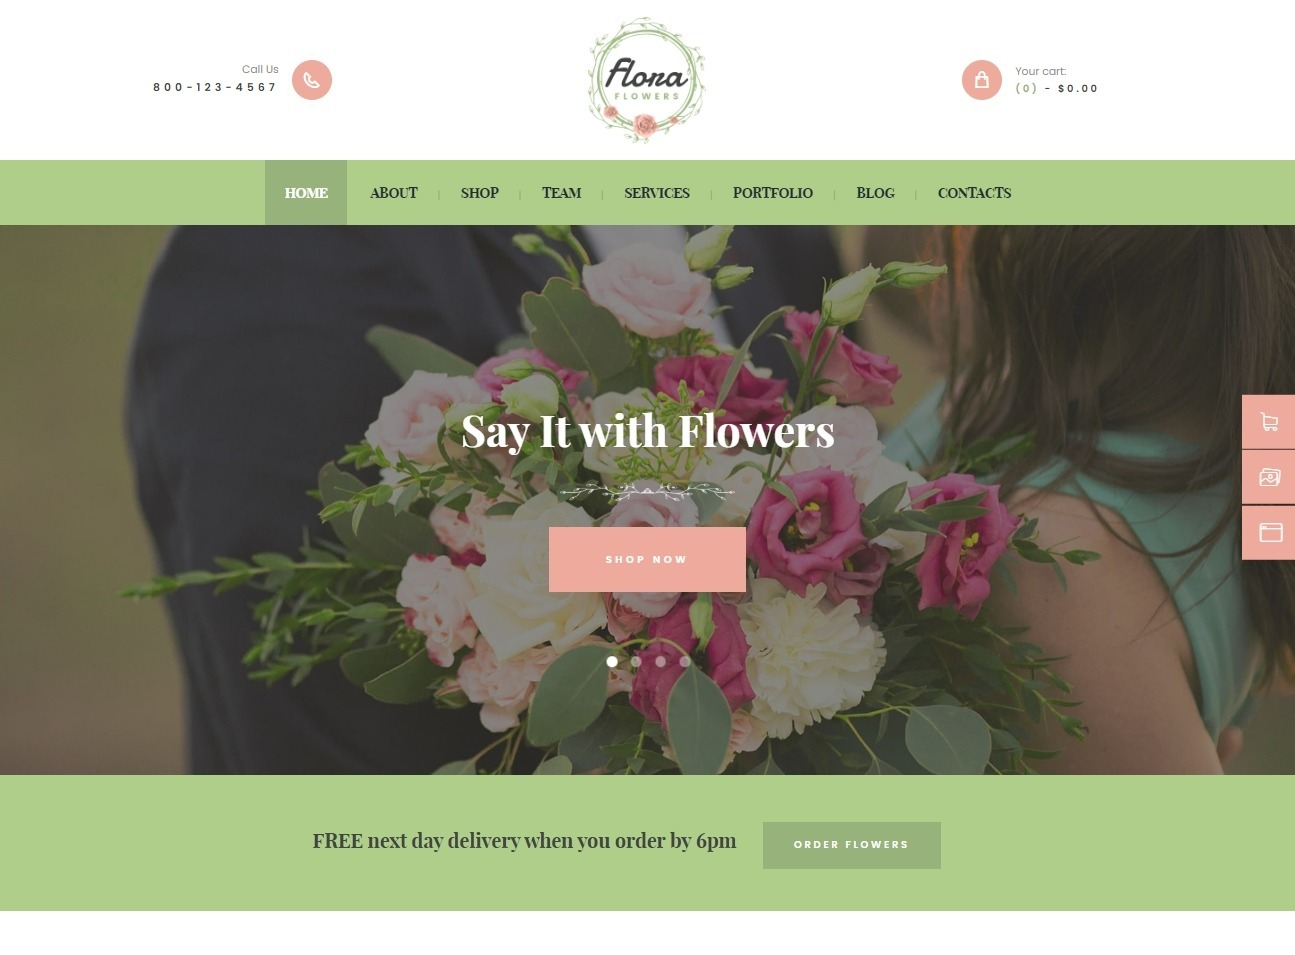 Flowers Boutique Welcome to Our Flowers Boutique